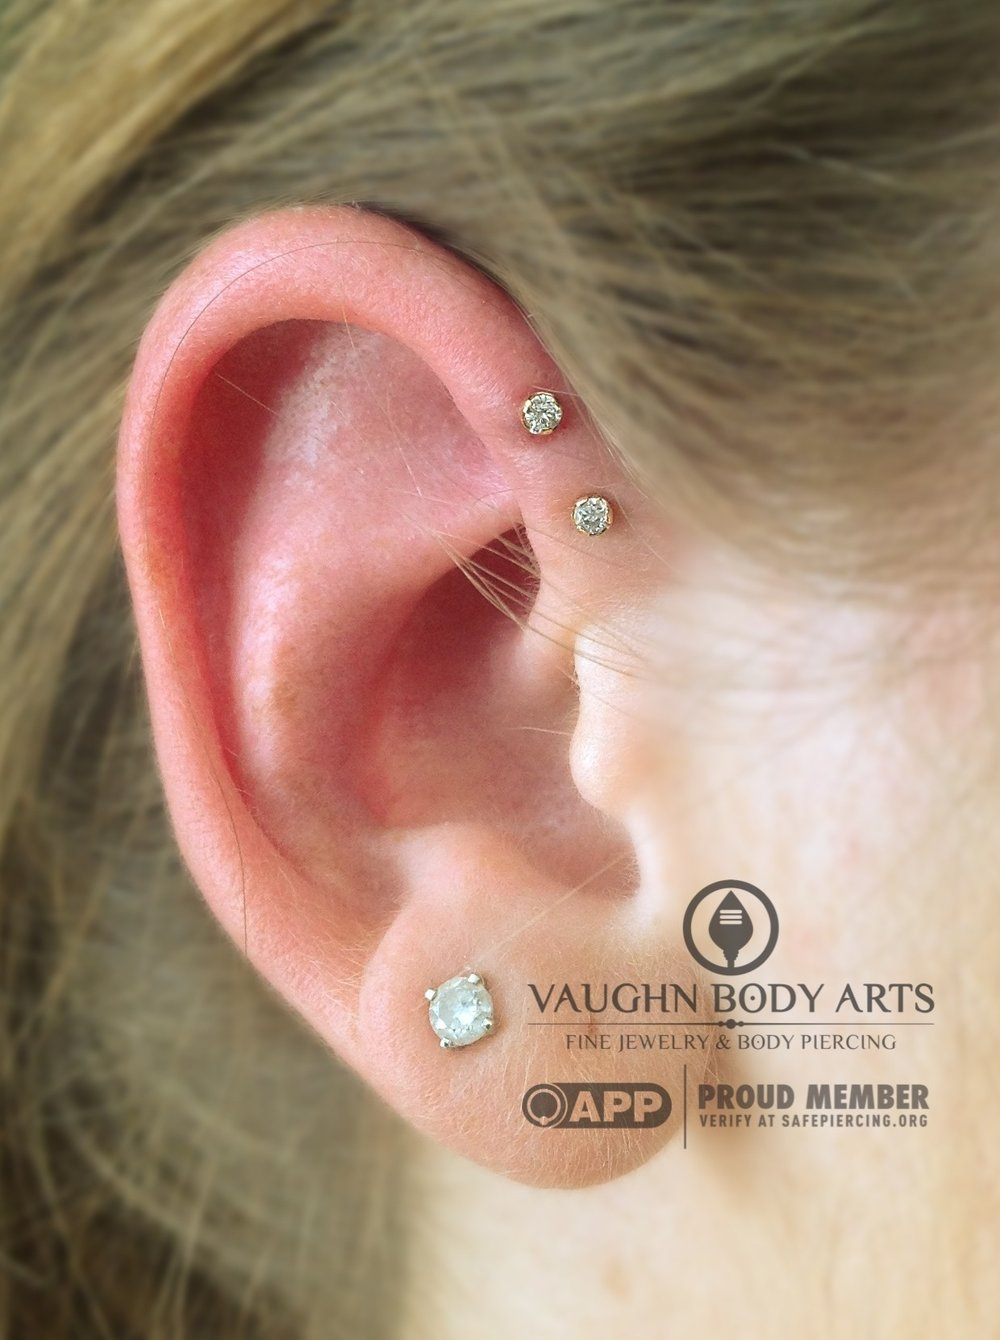 Double forward helix piercings with 18k yellow gold and genuine diamond jewelry from Anatometal.